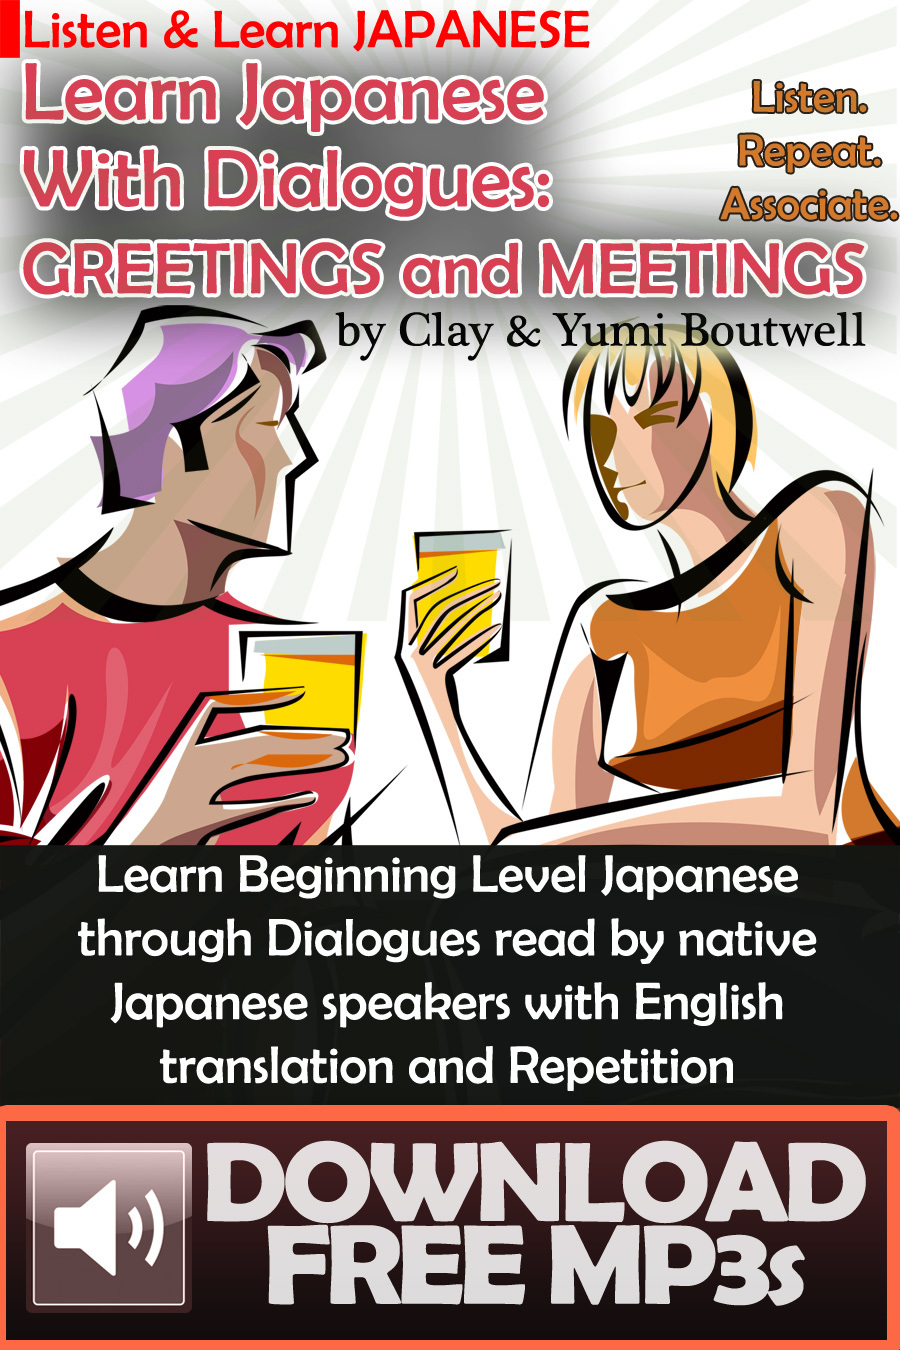 Learn Japanese with Dialogues: Greetings and Meetings